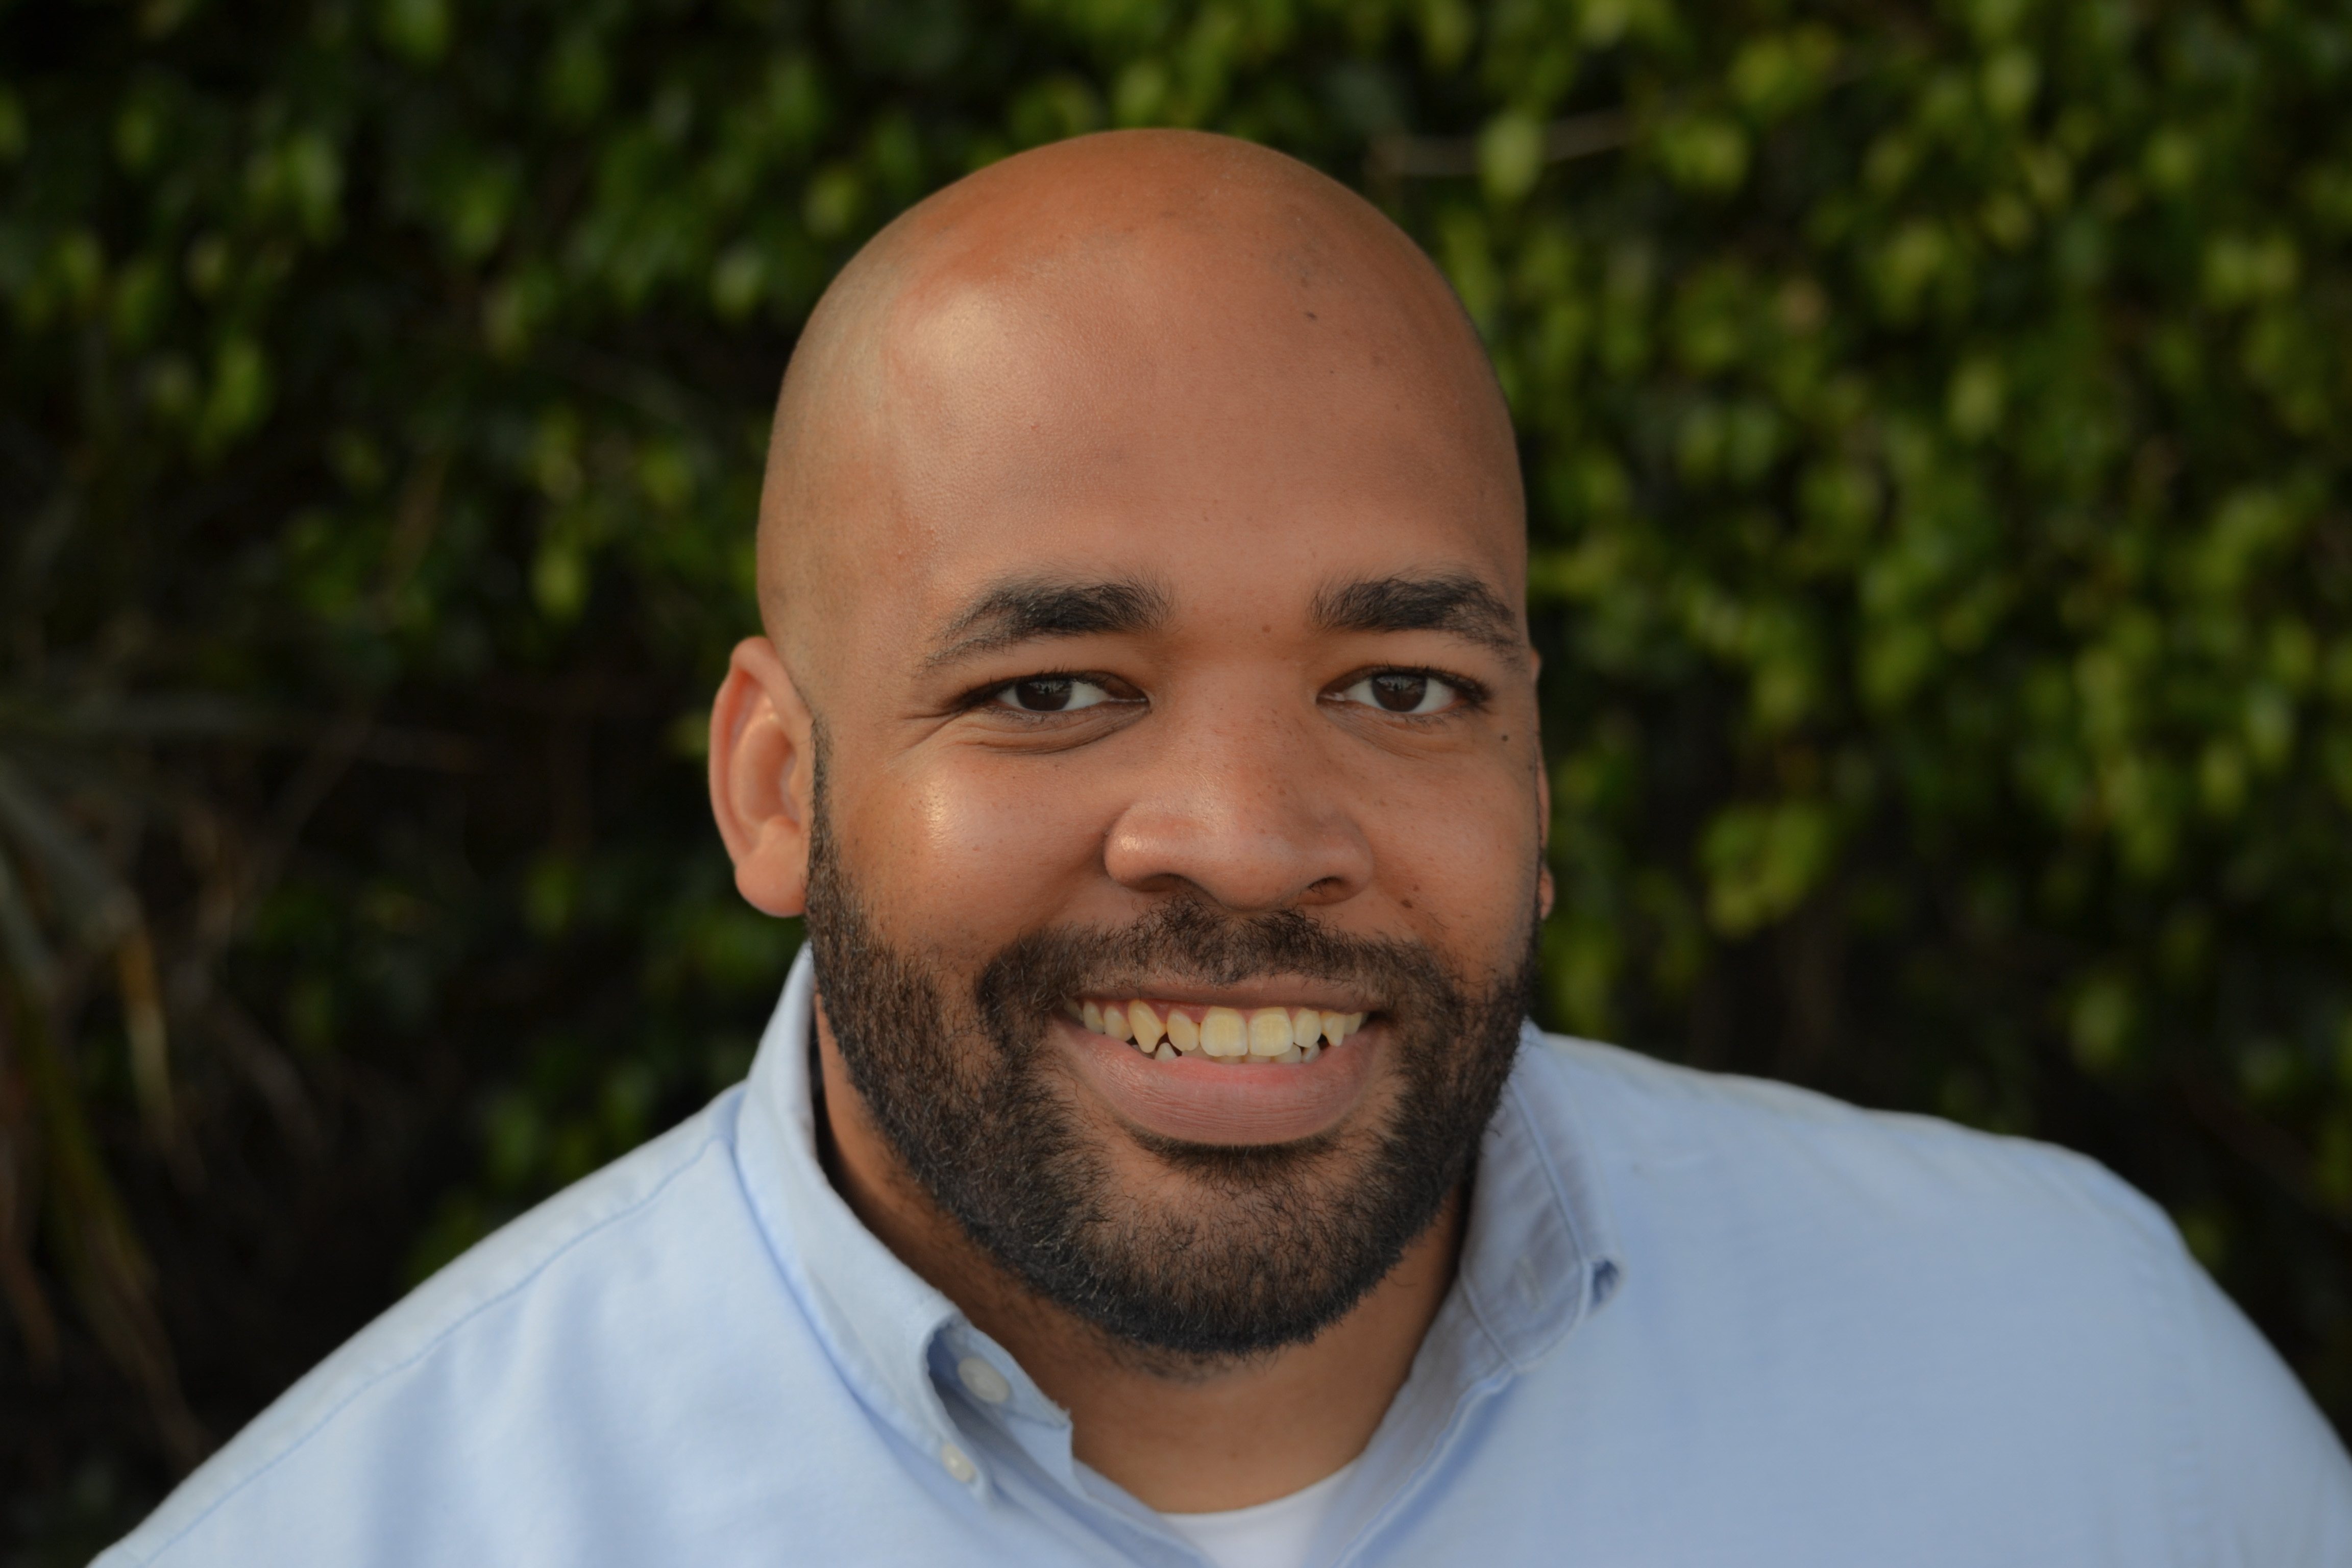 Matthew Jackson accepted an Assistant Professor position at CSULA